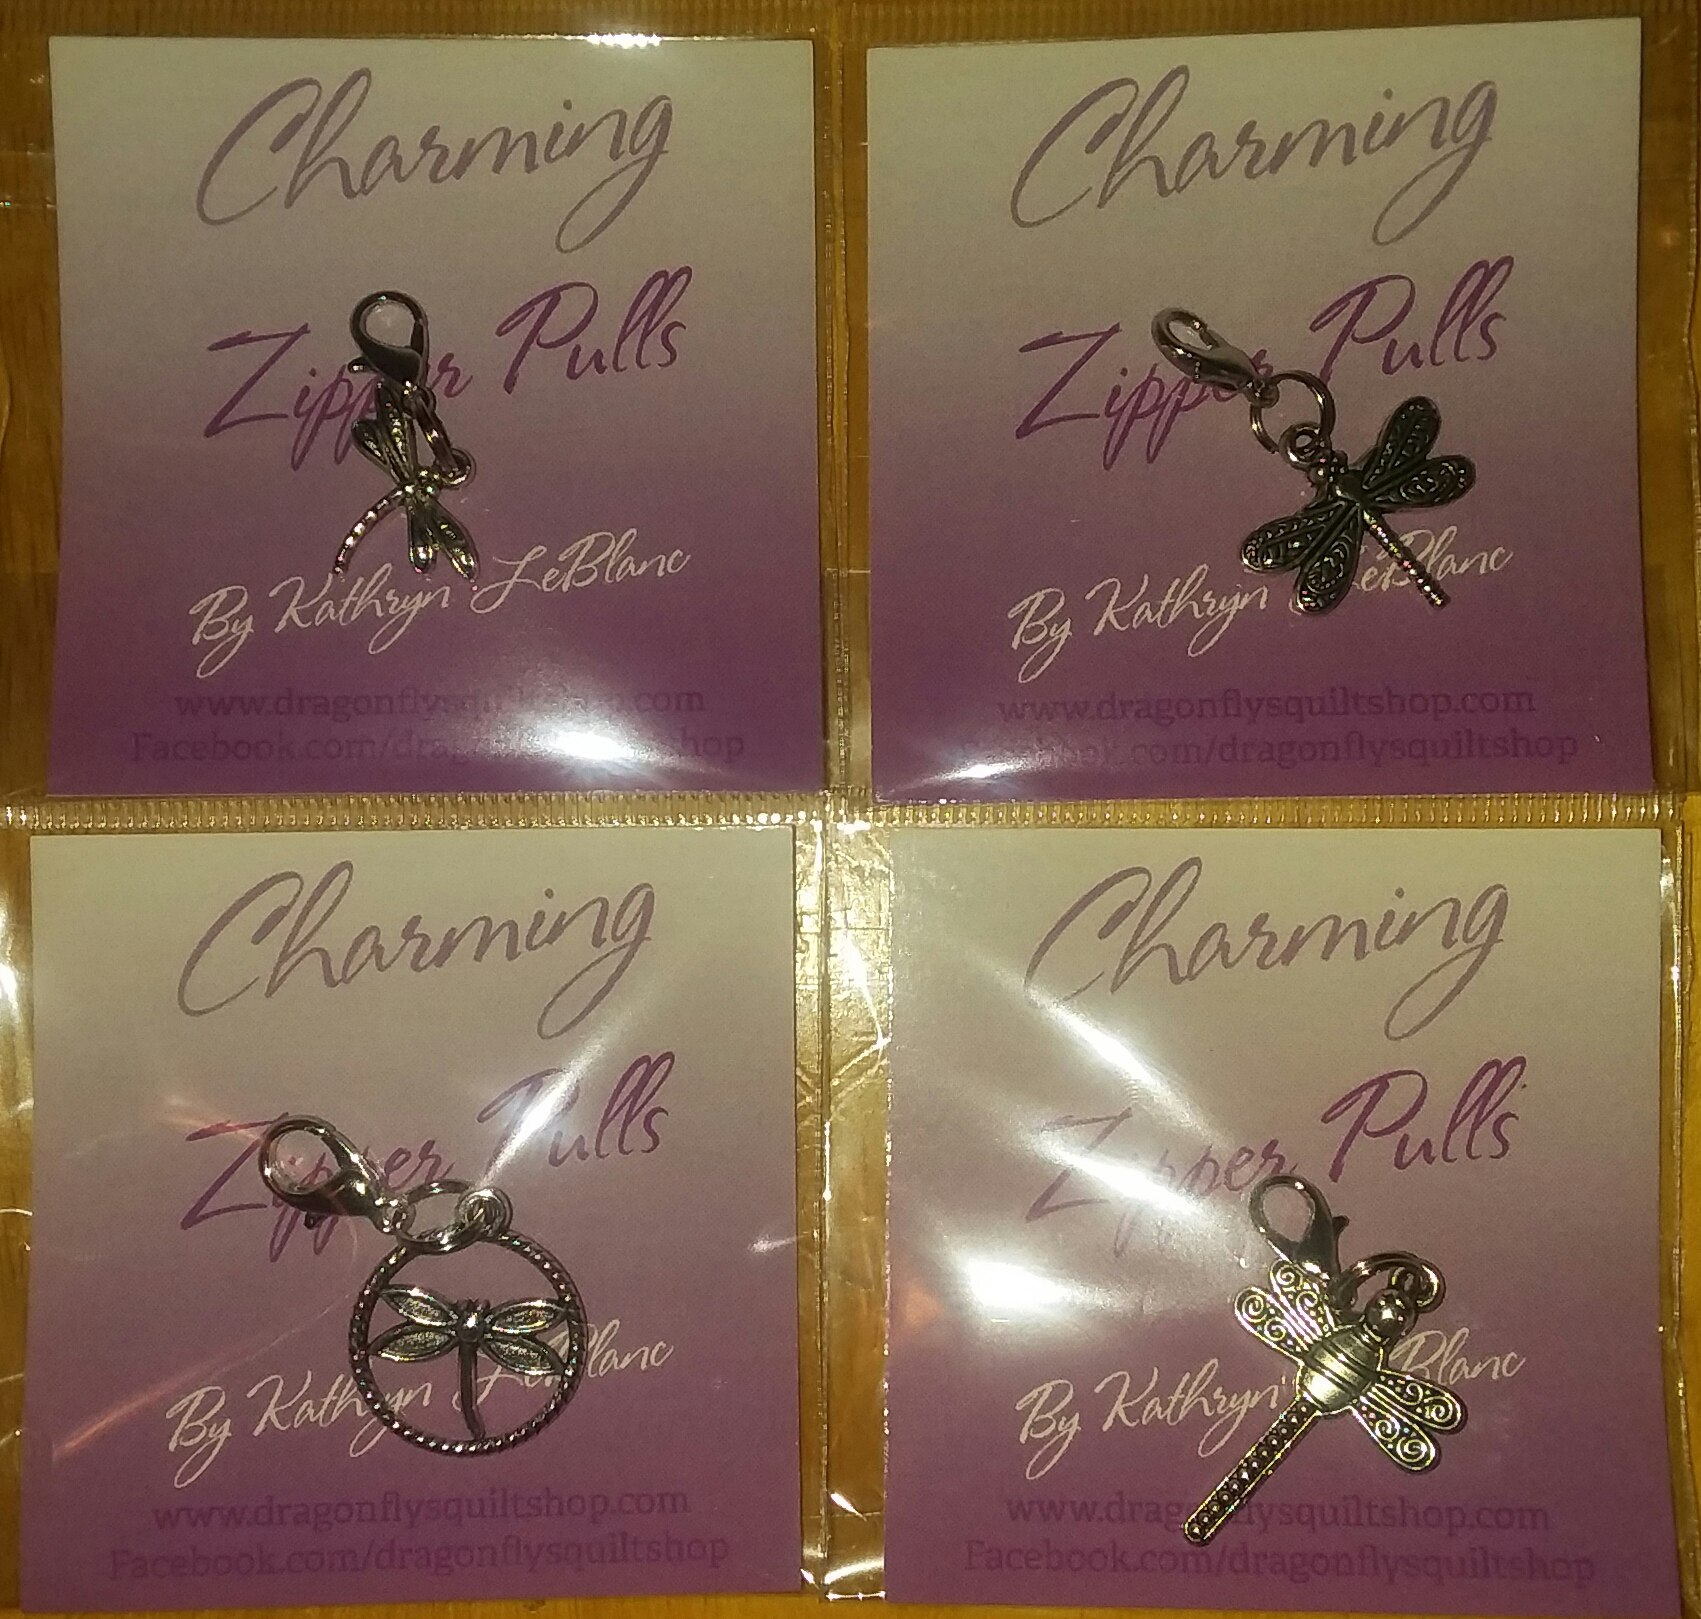 ZP Charming Zipper Pulls - 4 for $10 SET 2  Four Dragonflies